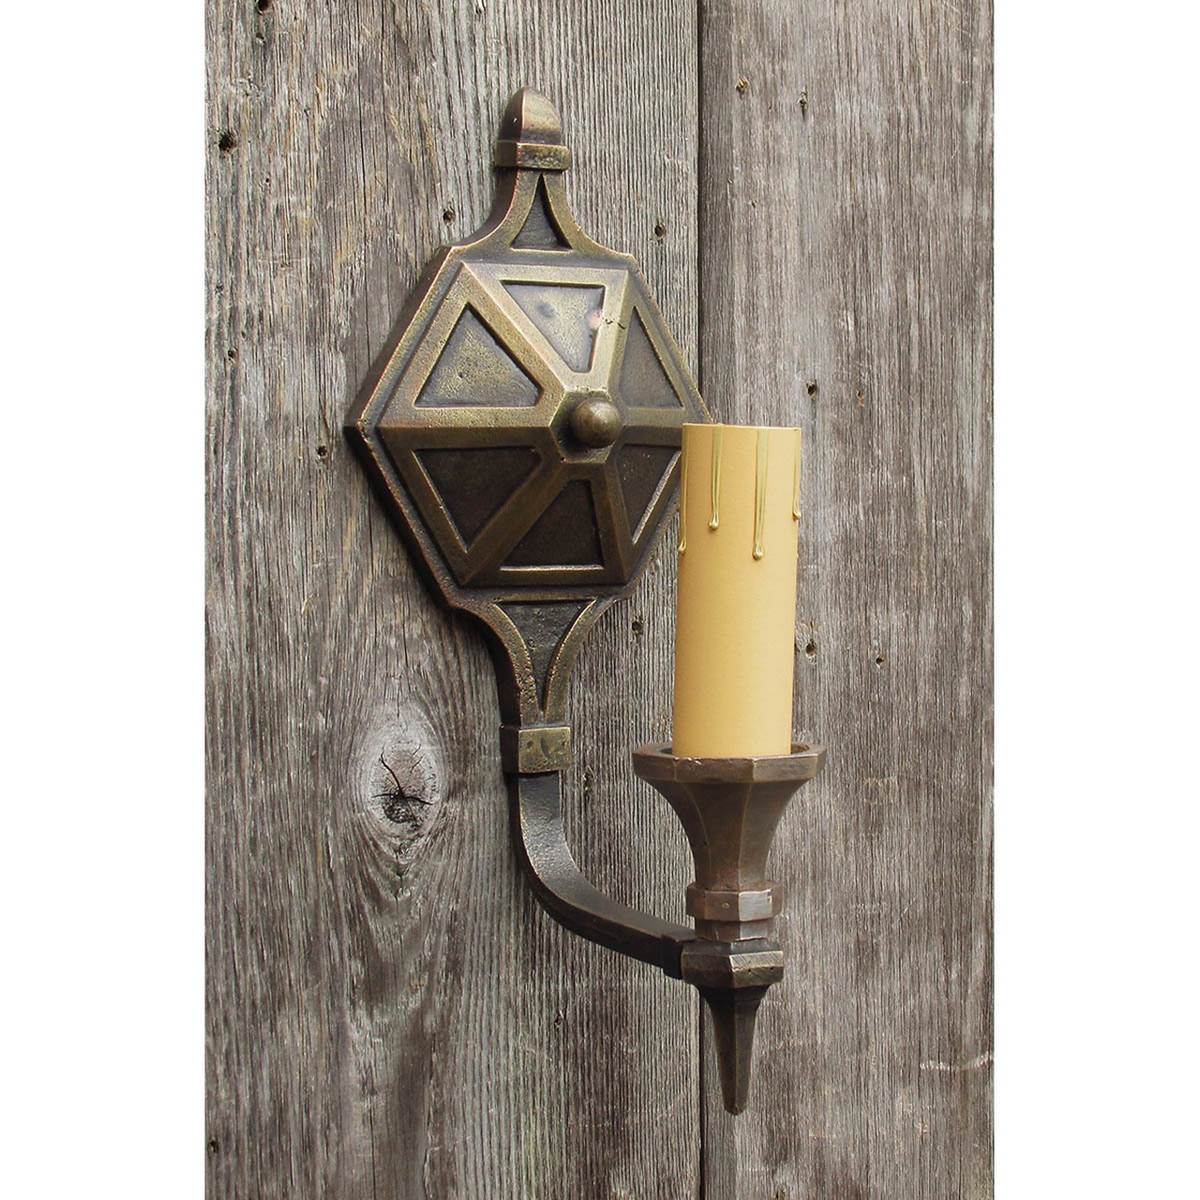 606516 - Antique Tudor Revival Candle Arm Wall Sconce